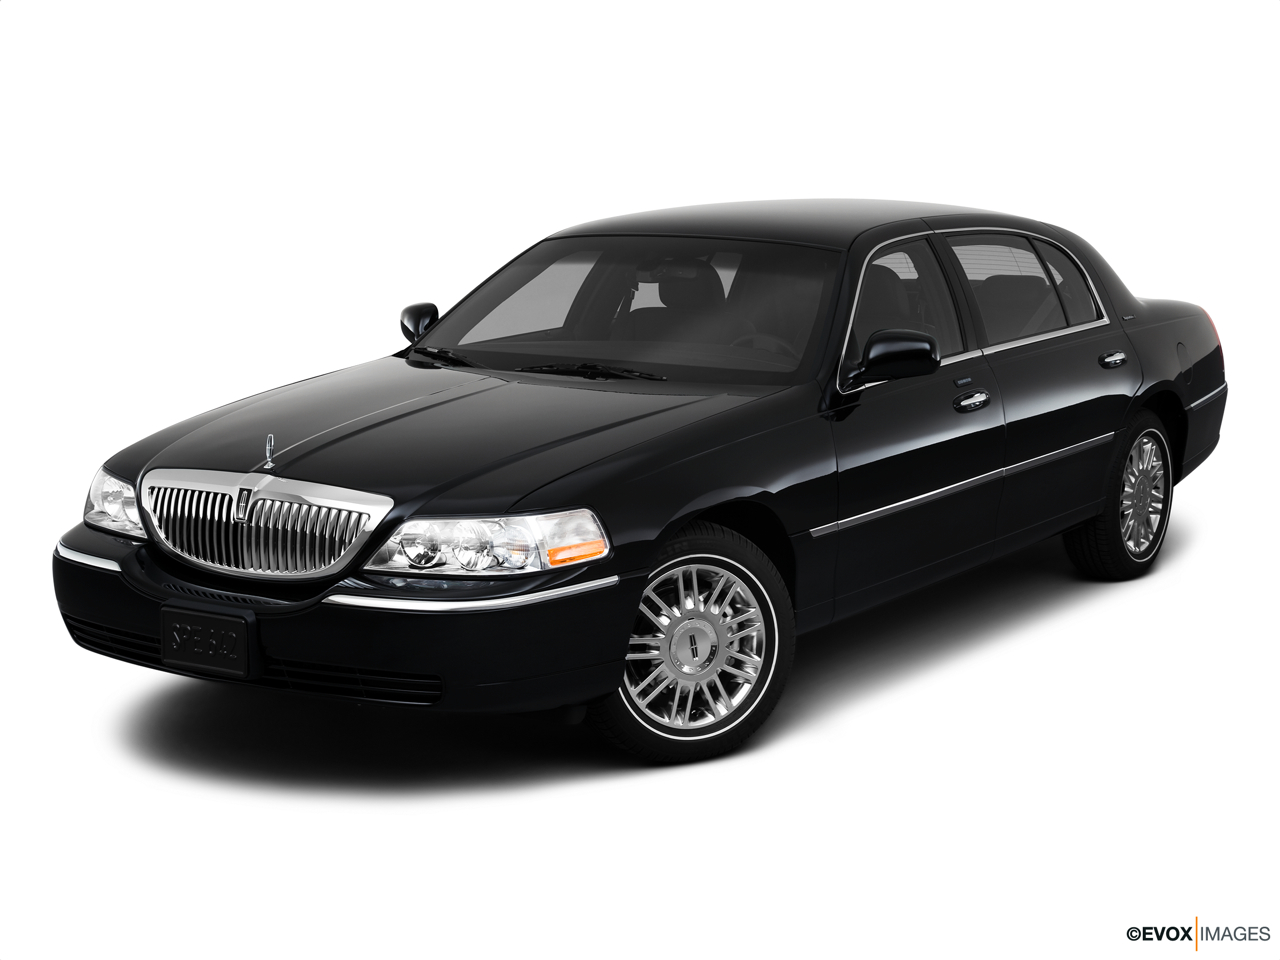 2010 Lincoln Town Car Signature L Front angle view.